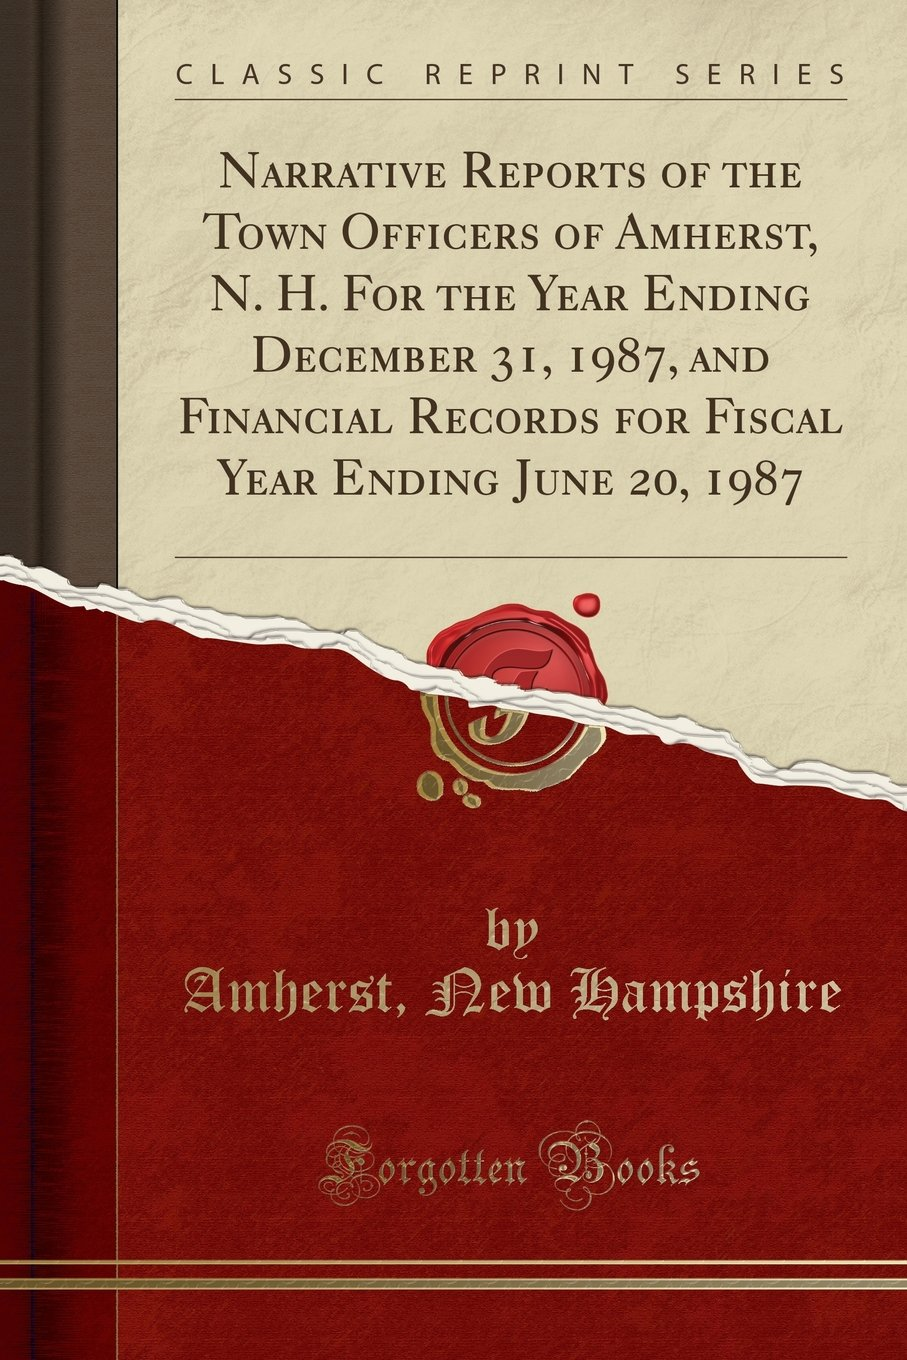 Download Narrative Reports of the Town Officers of Amherst, N. H. For the Year Ending December 31, 1987, and Financial Records for Fiscal Year Ending June 20, 1987 (Classic Reprint) PDF